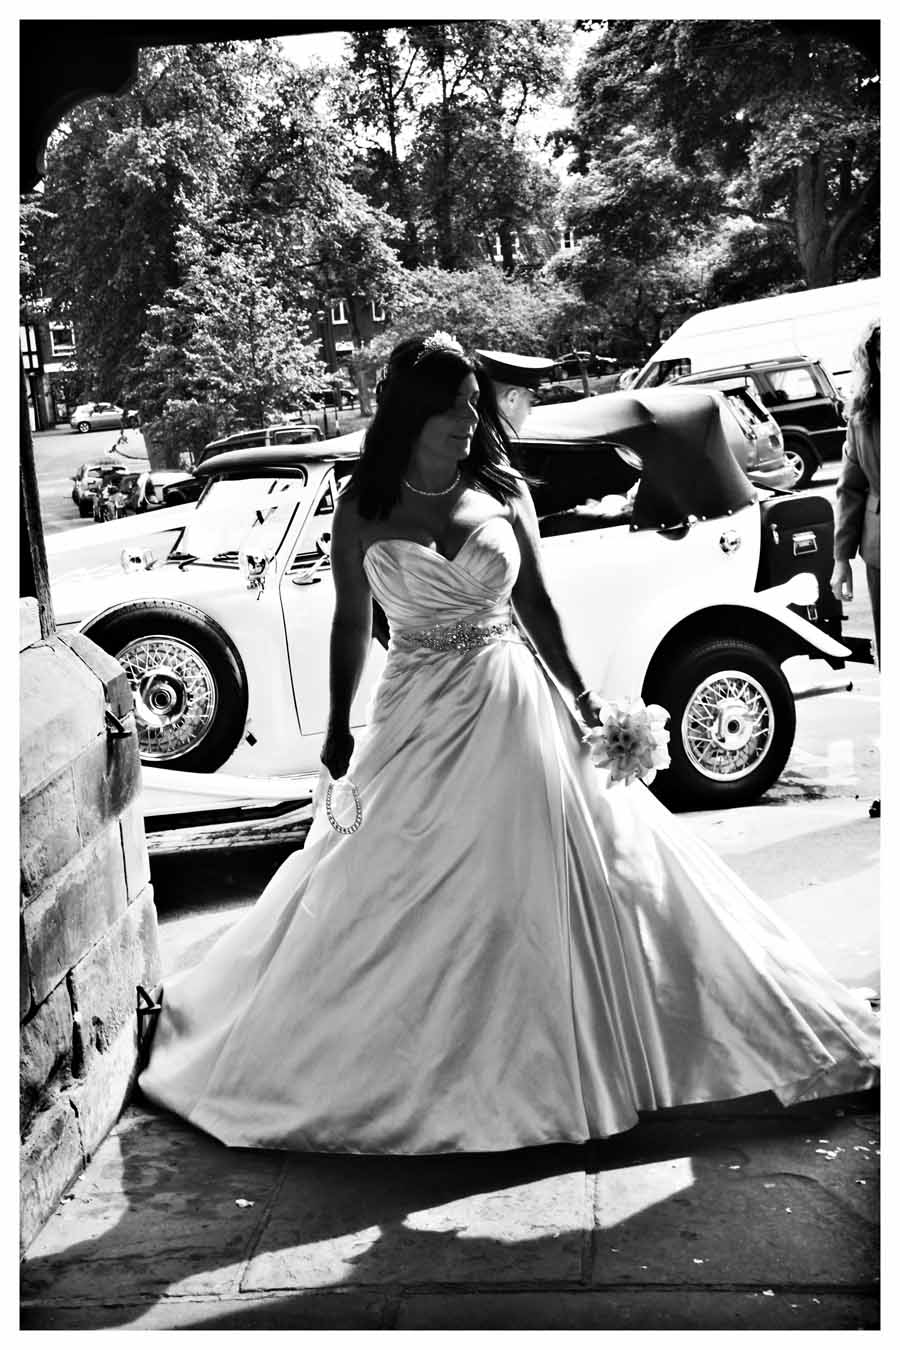 BRIDE Photos by Simeon Thaw copyright 2014 (56).jpg